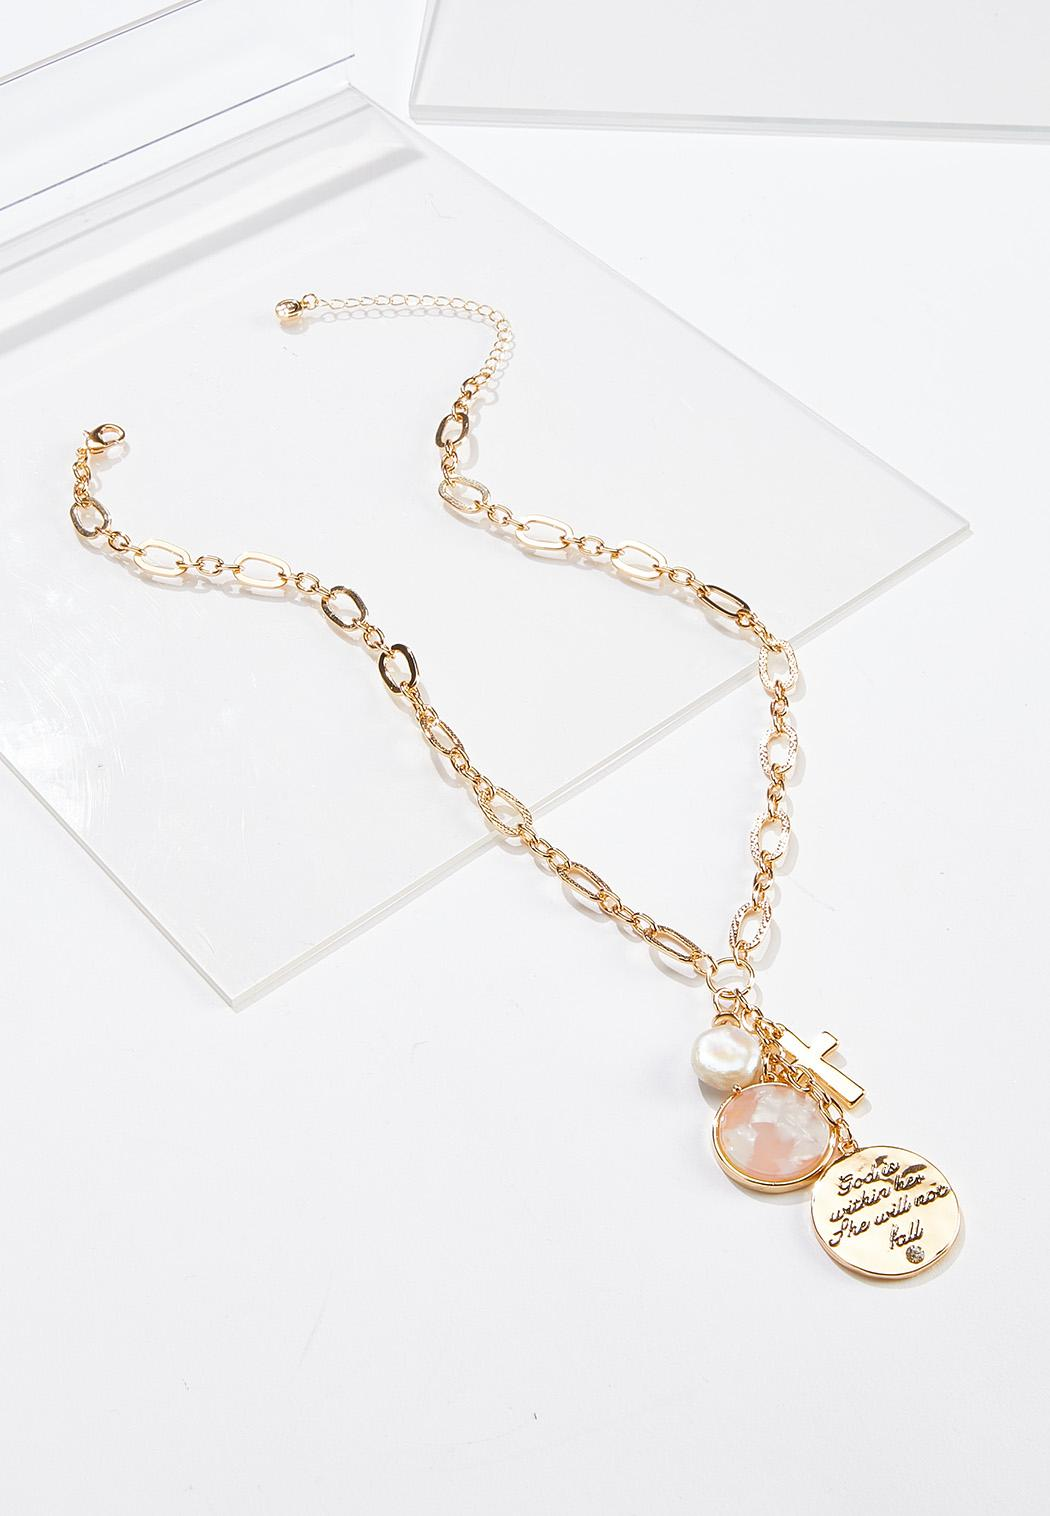 Inspirational Charm Necklace